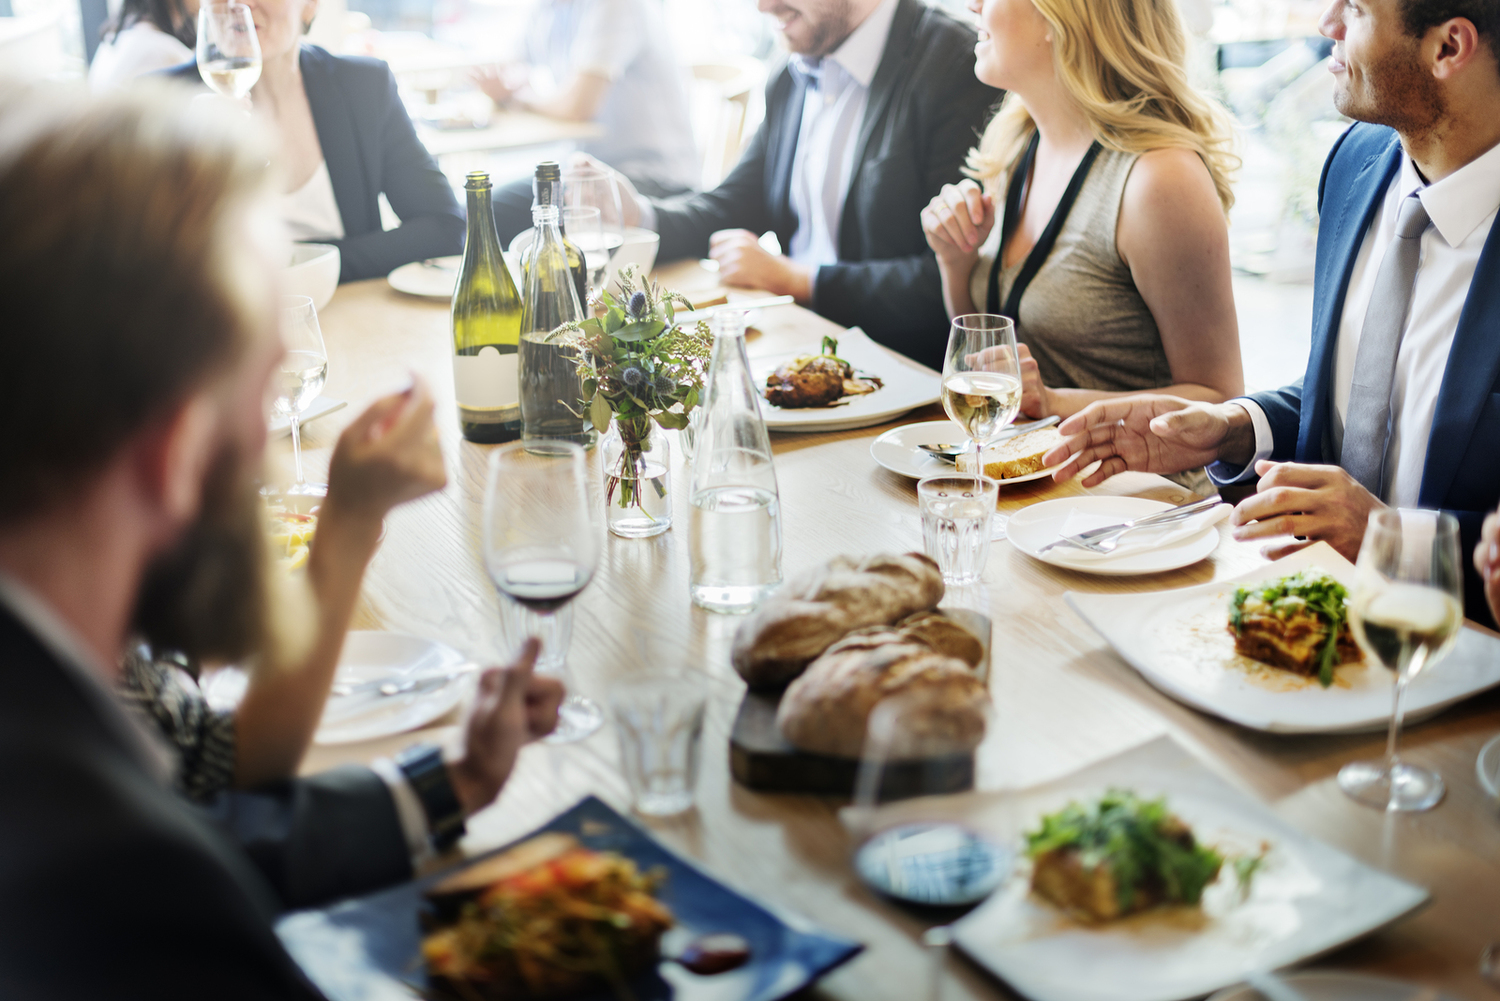 Dining Etiquette Seminars And Table Manners